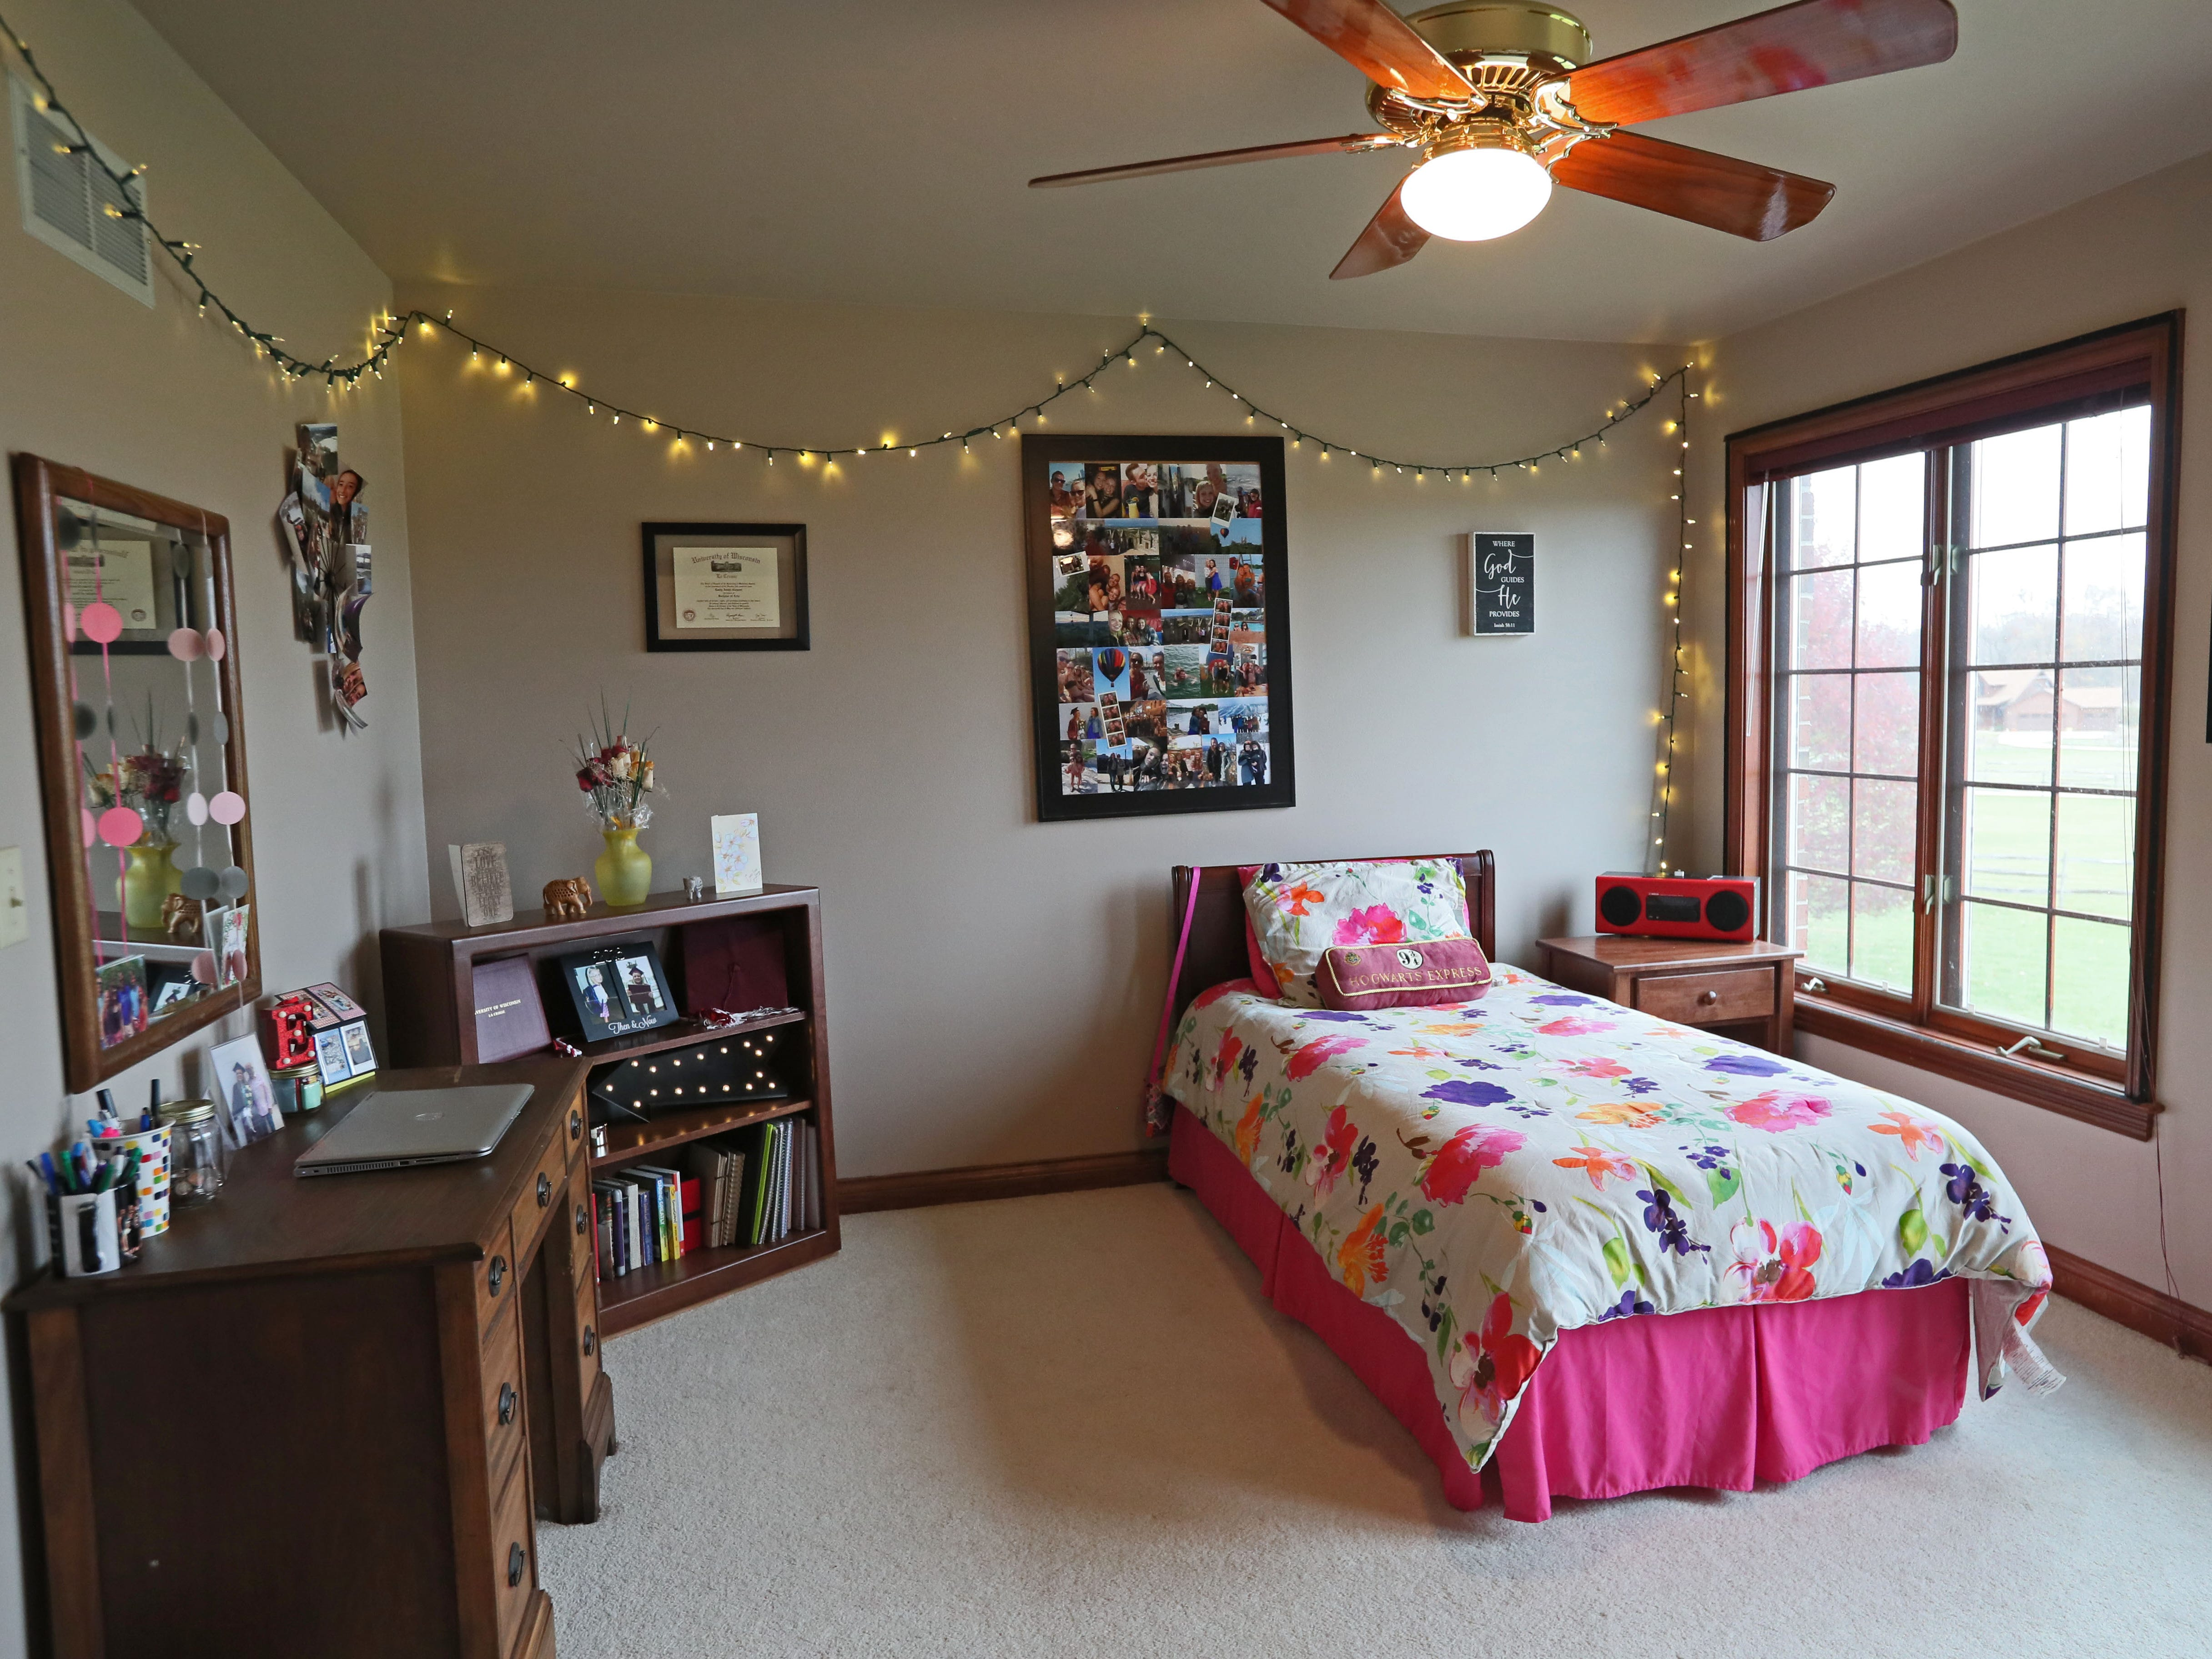 Even a daughter's bedroom is decked out with holiday lights.